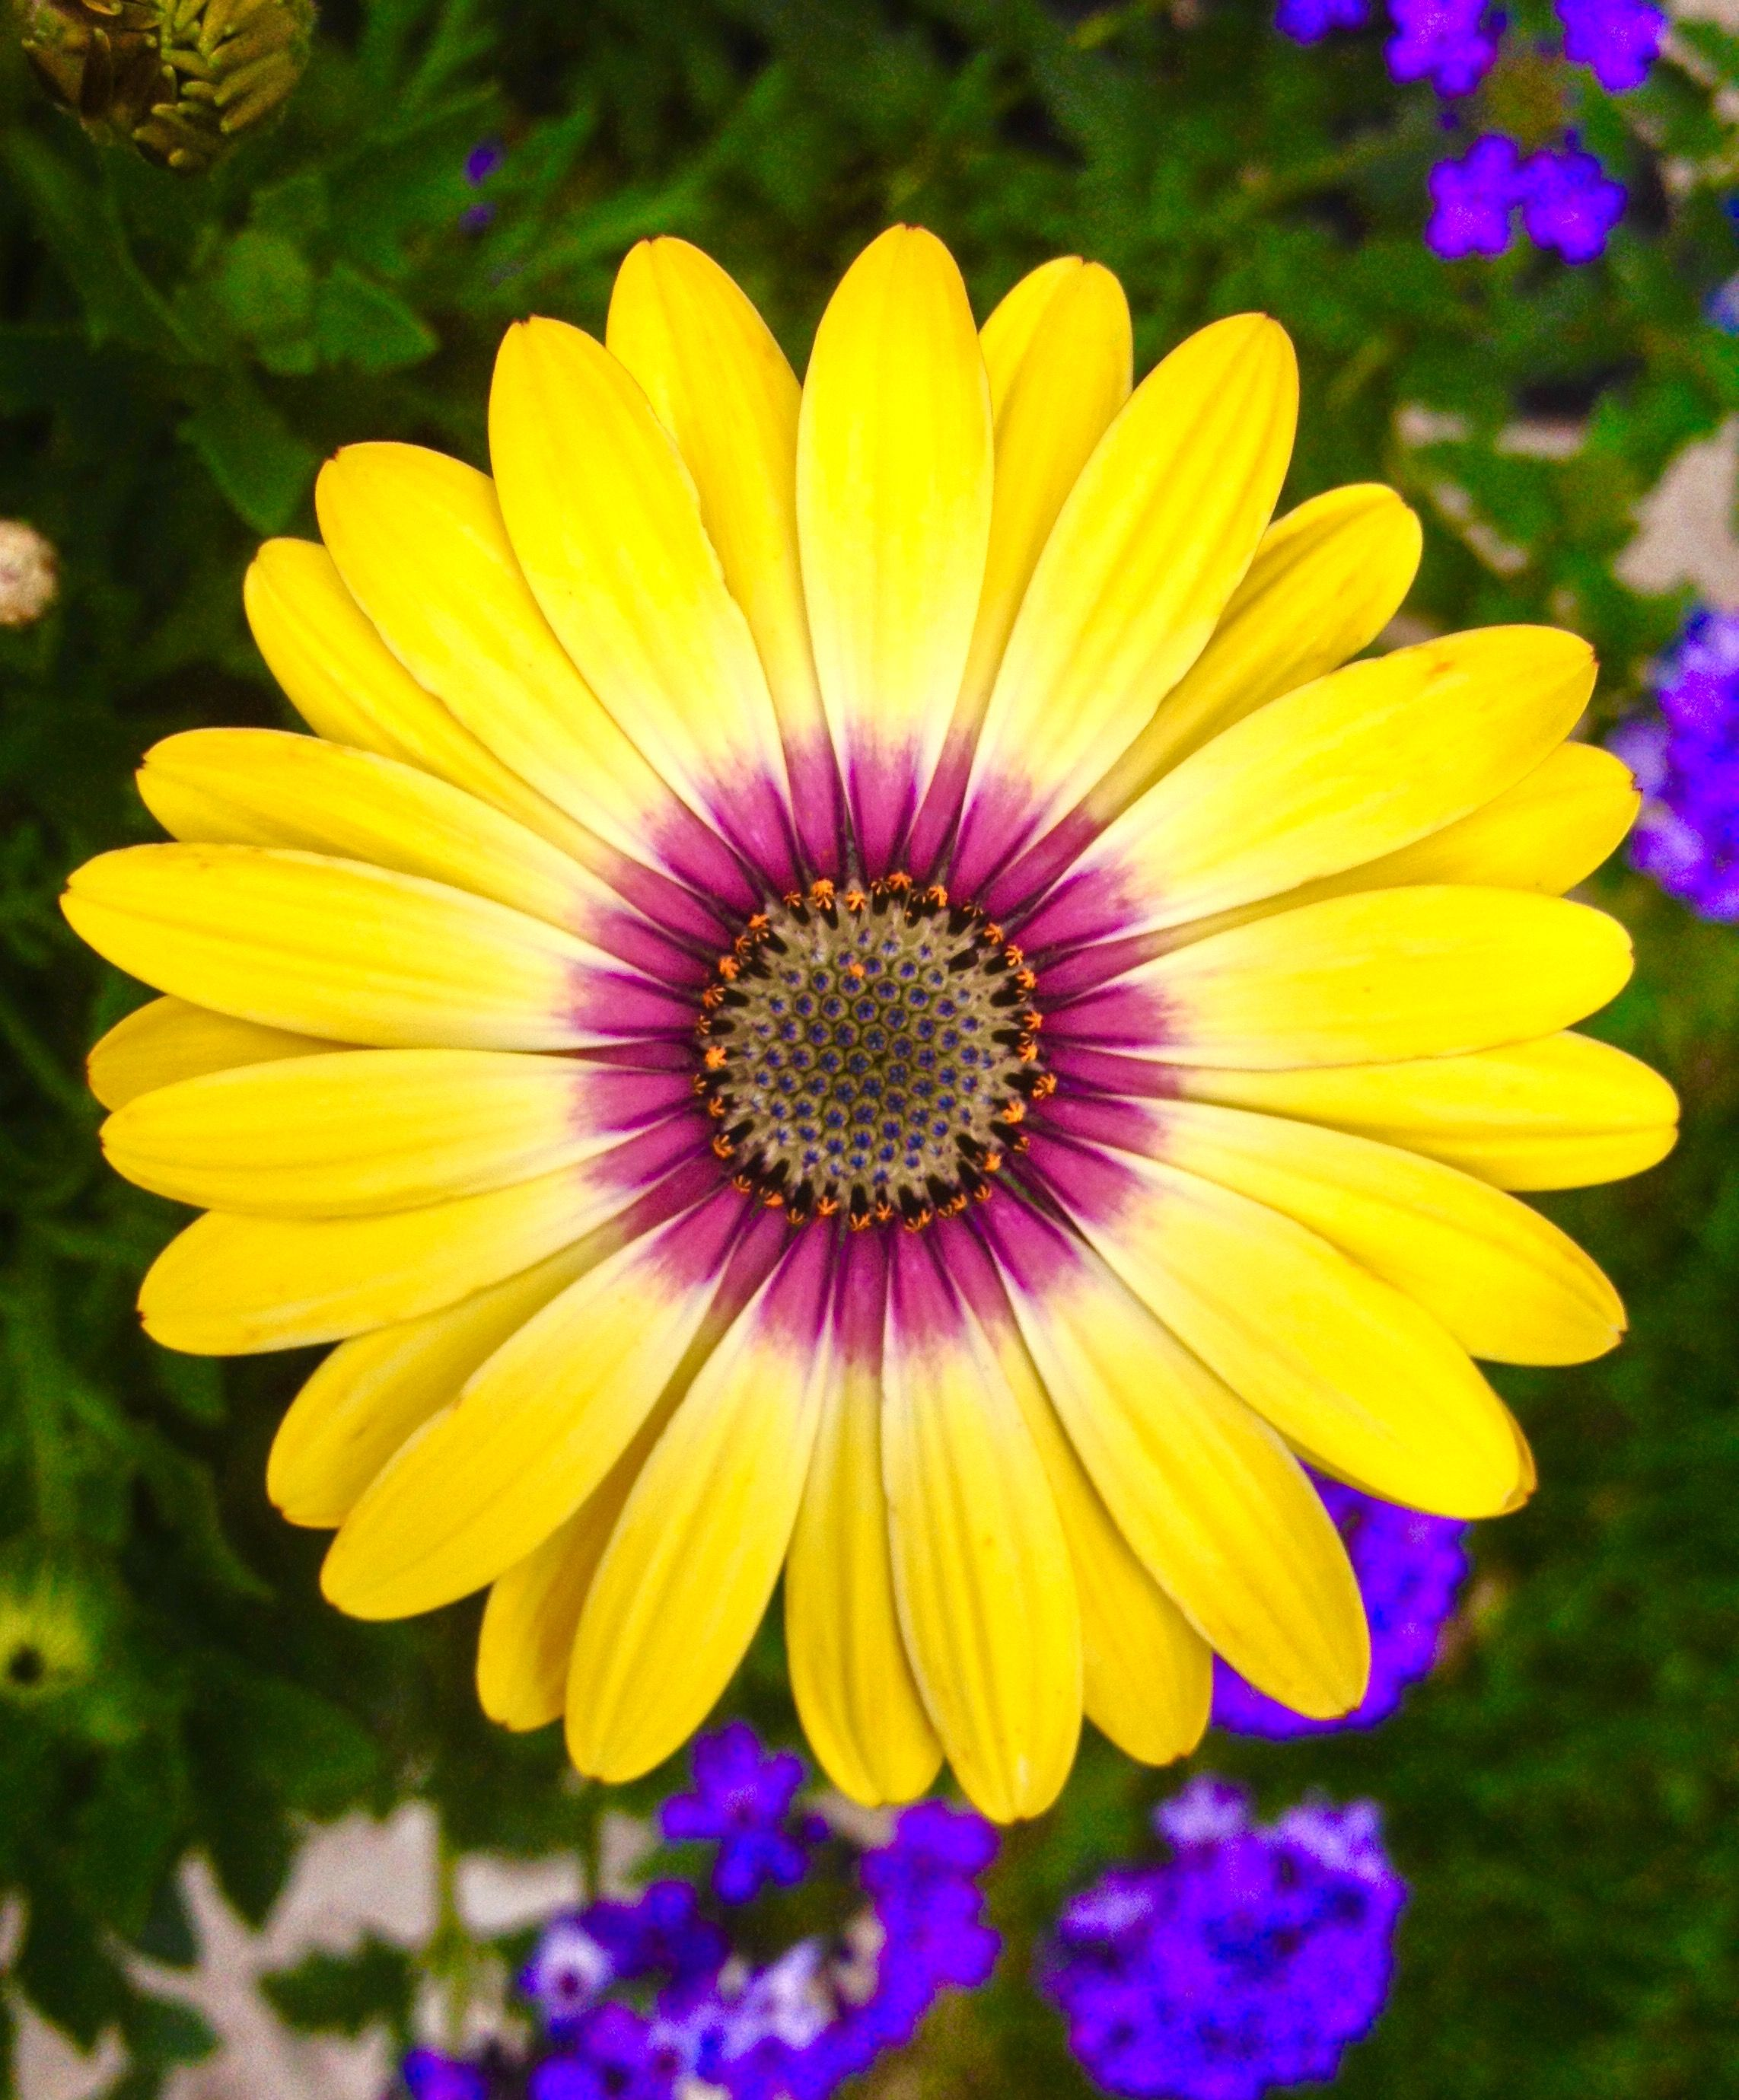 Yellow Daisy Flower With Purple Center | G A R D E N ...